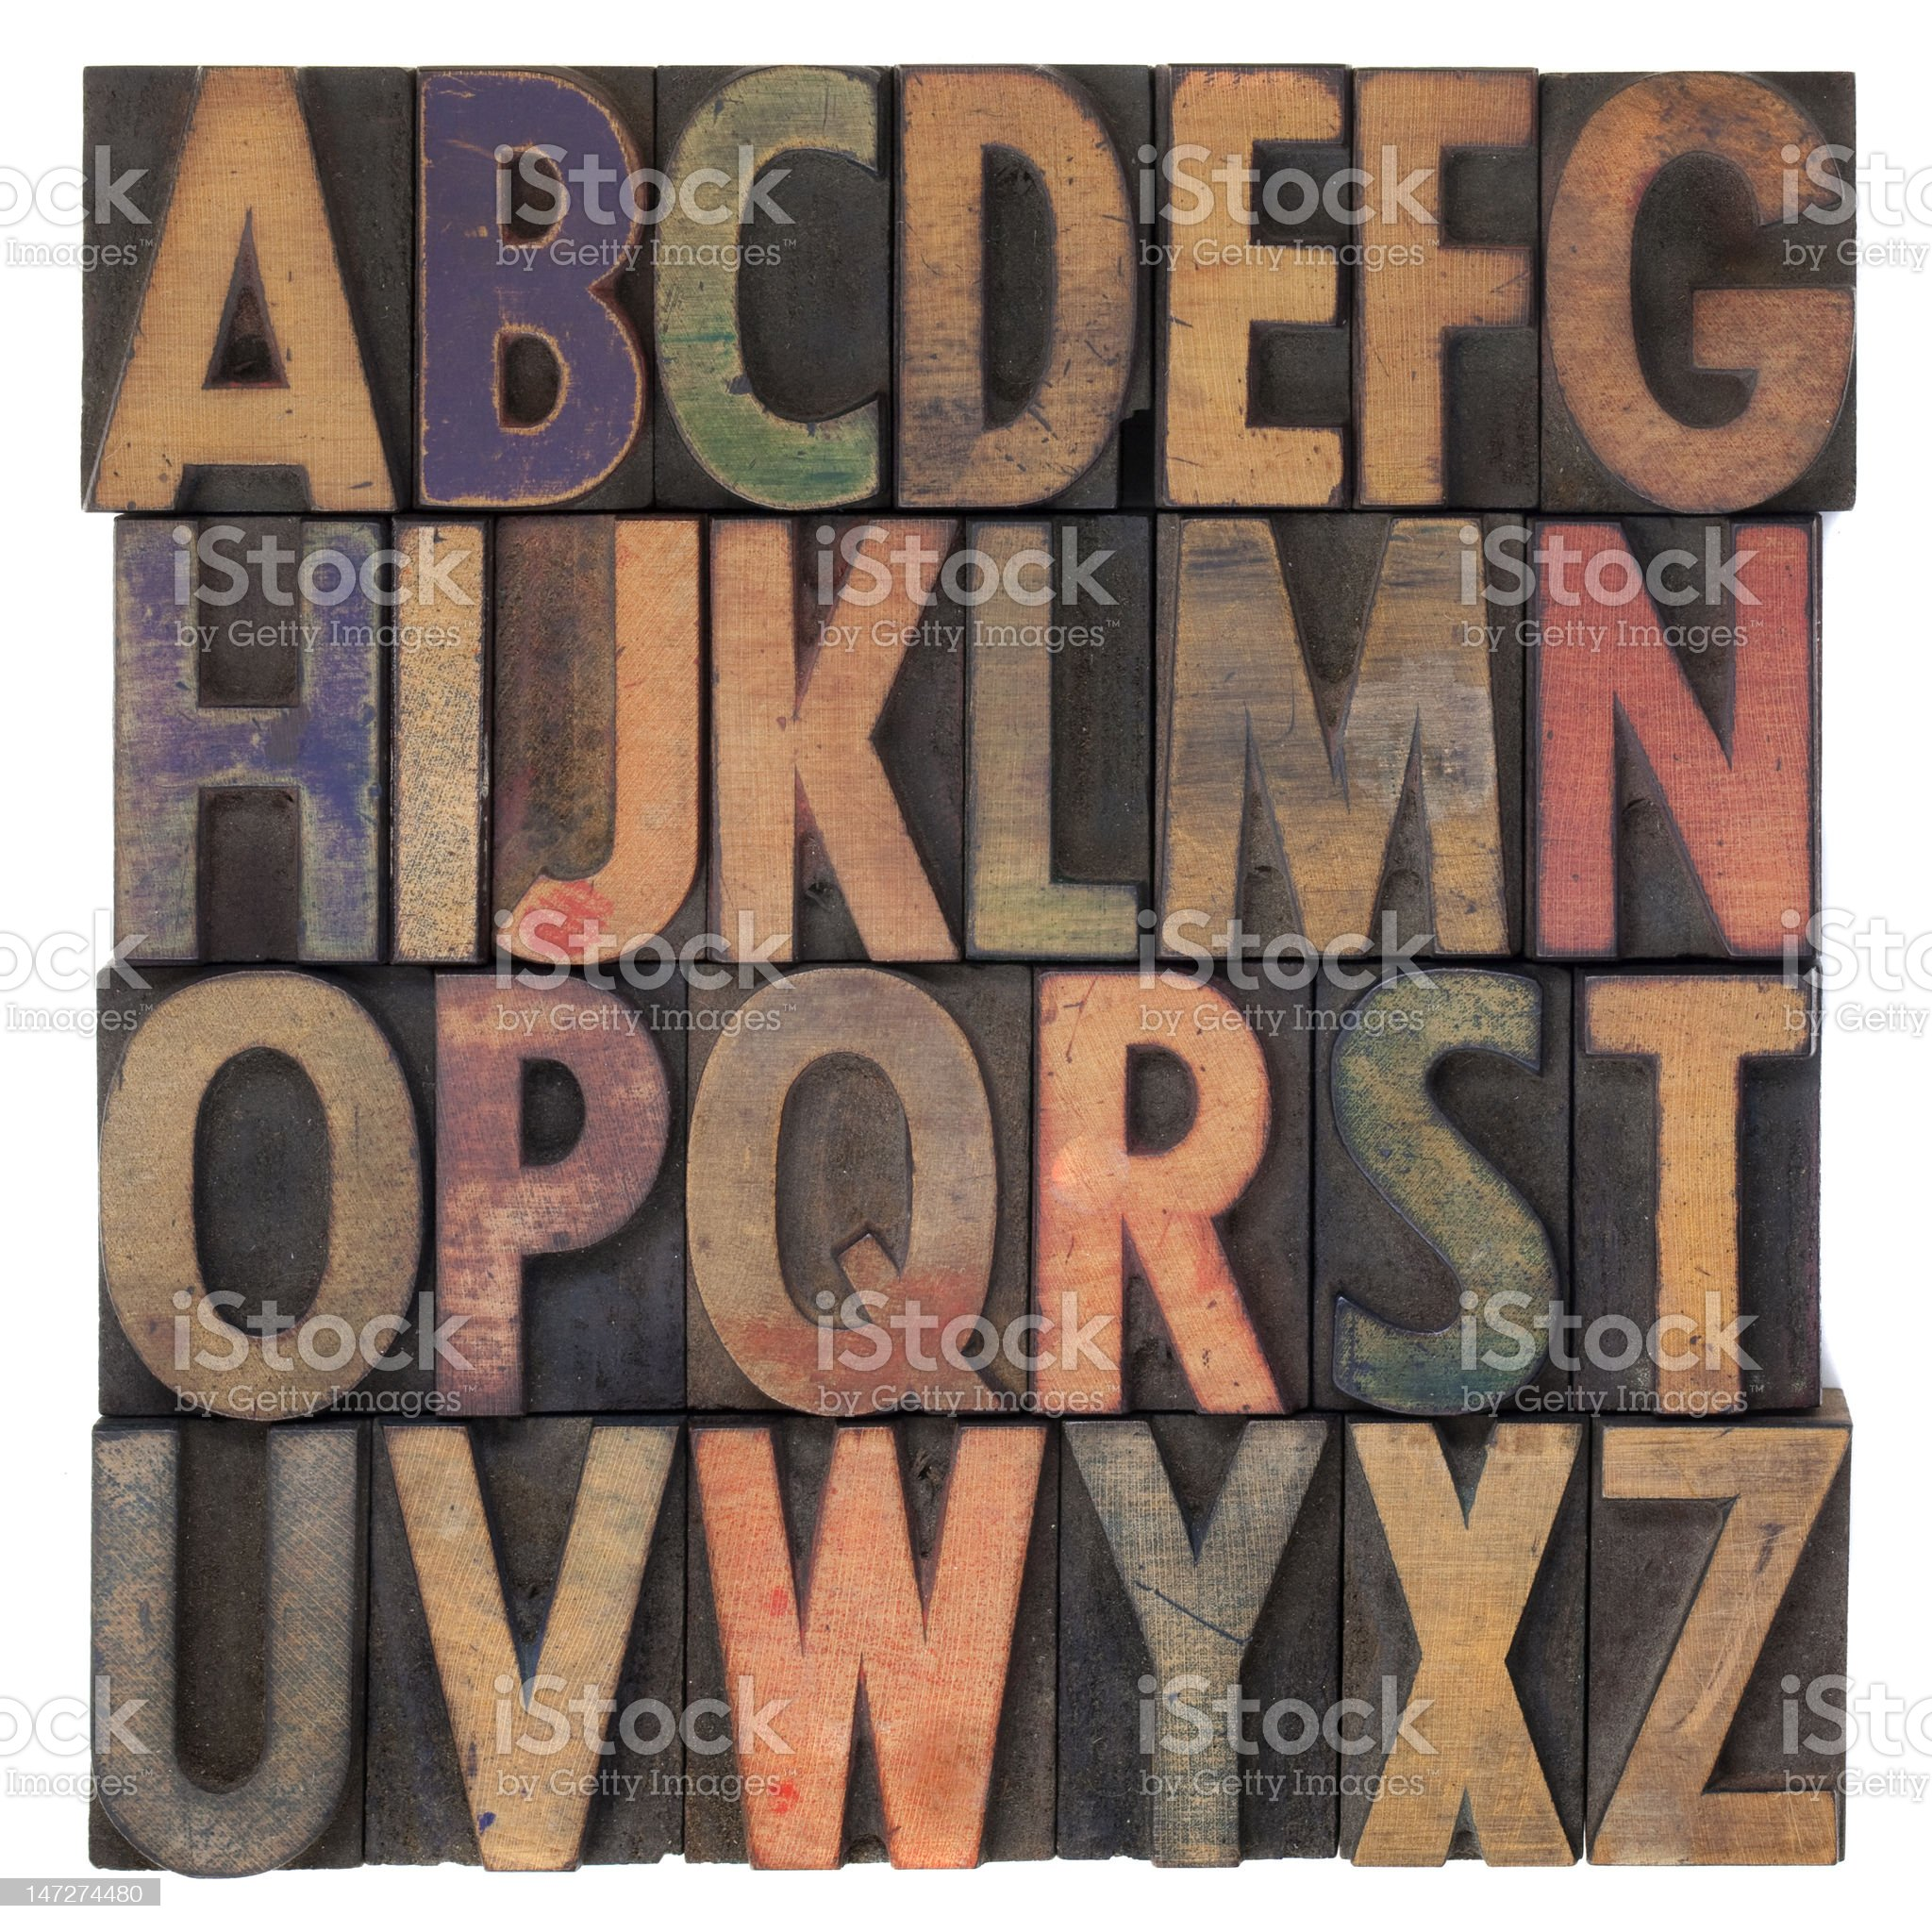 alphabet in vintage wooden letterpress type royalty-free stock photo